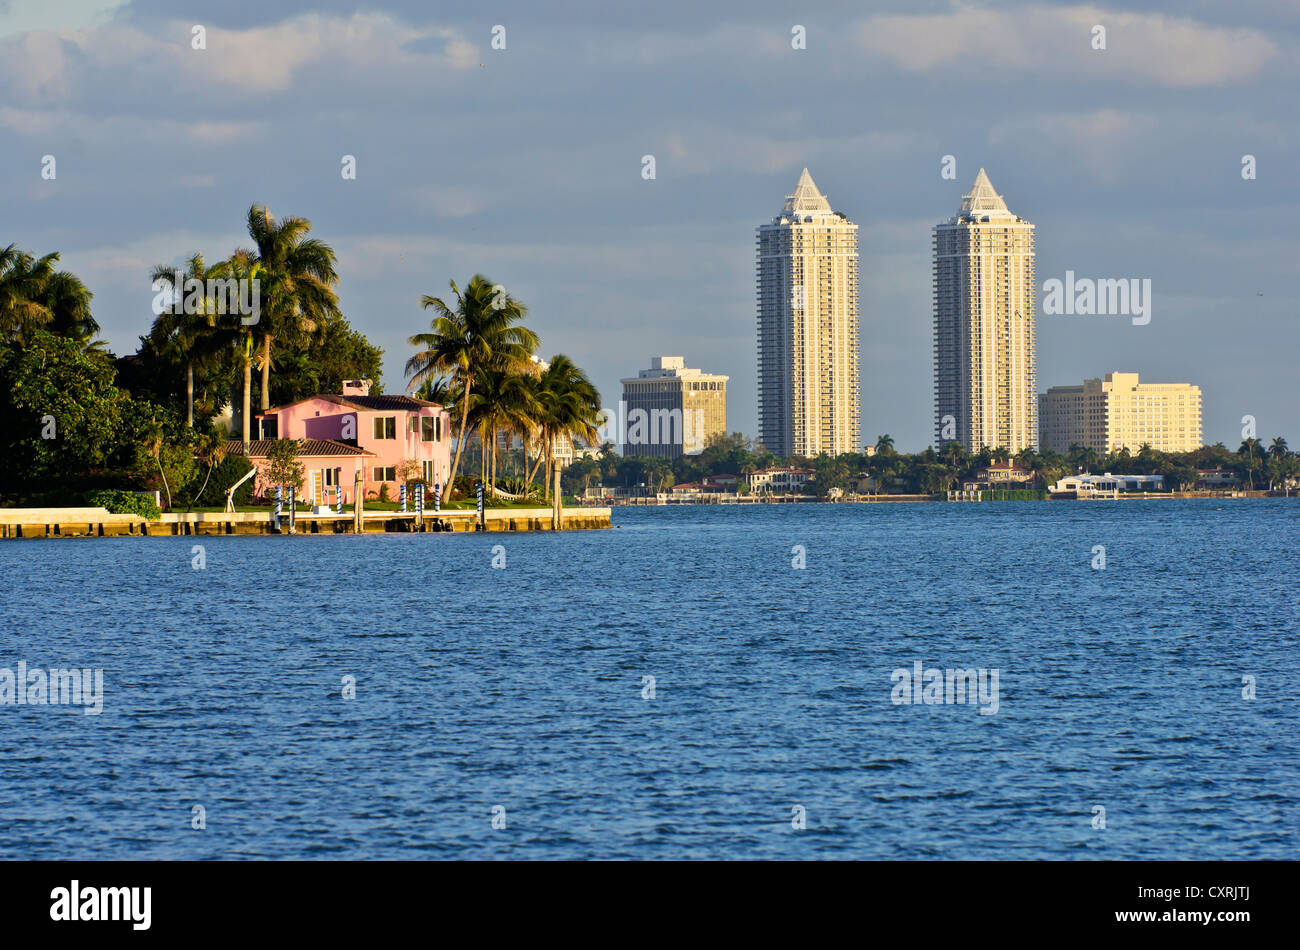 Housing complex at Mount Sinai Medical Center, seen from Morningside Park, Miami, Florida, USA - Stock Image